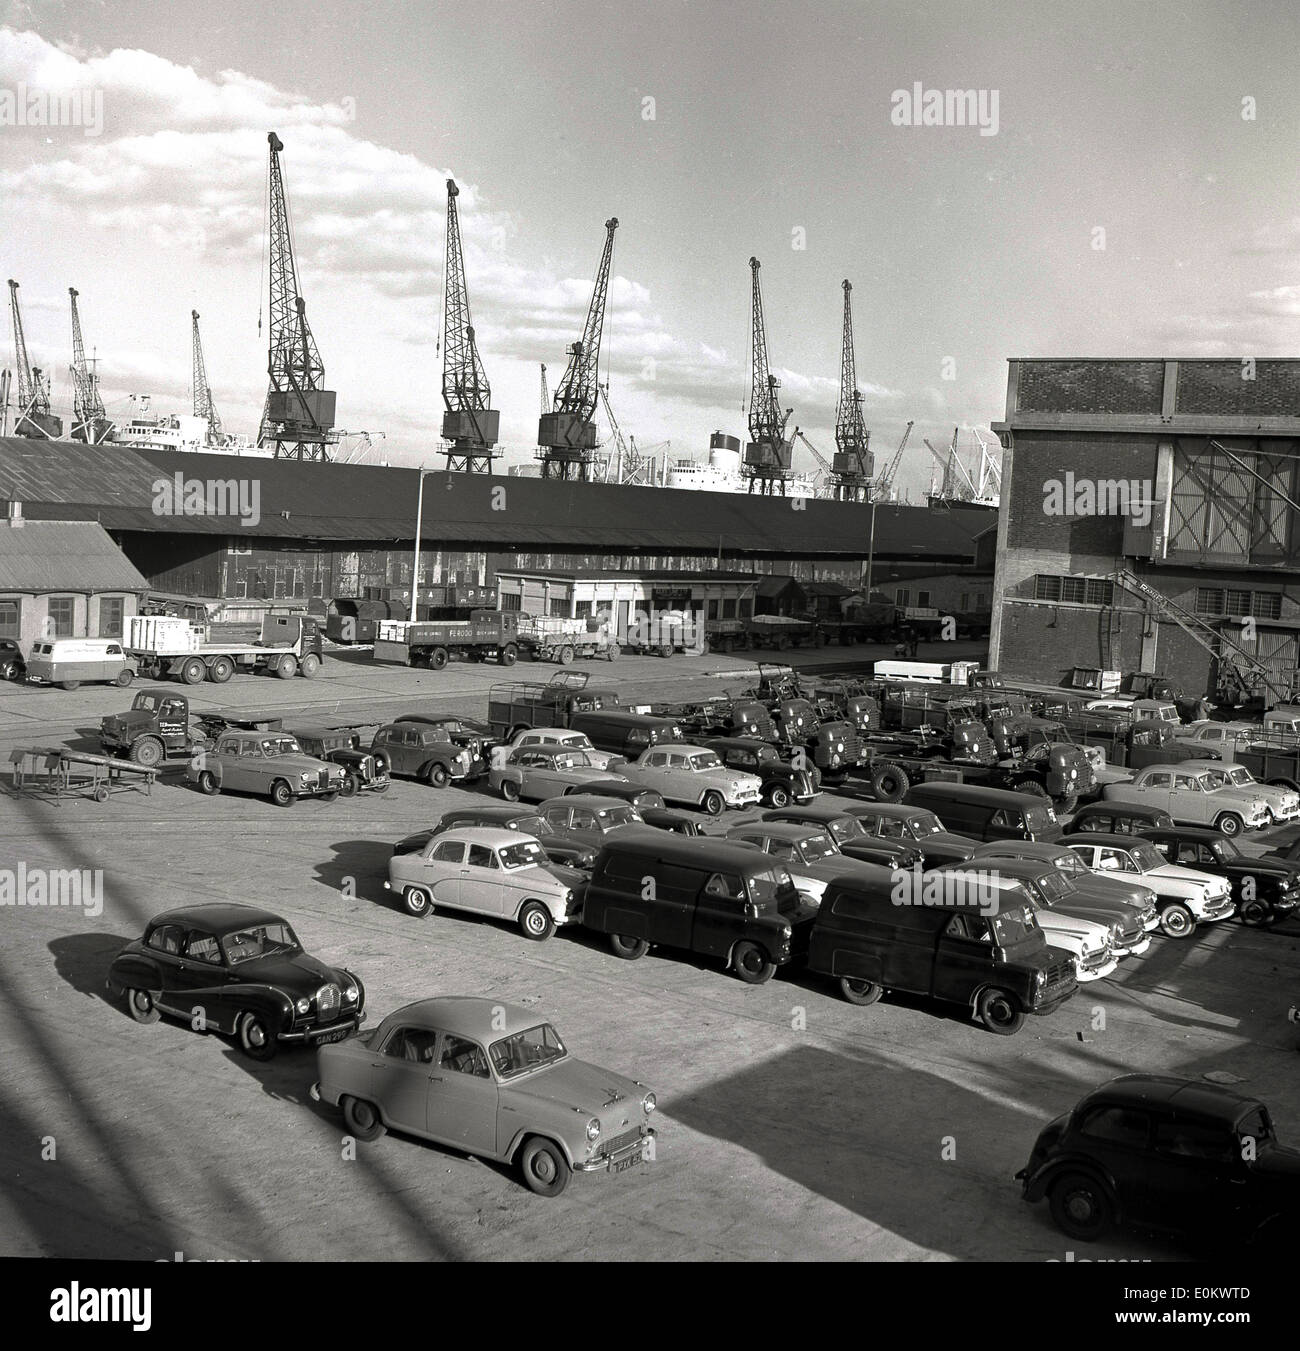 1950s, historical picture of Port of London showing old British cars parked waiting to be shipped overseas. - Stock Image